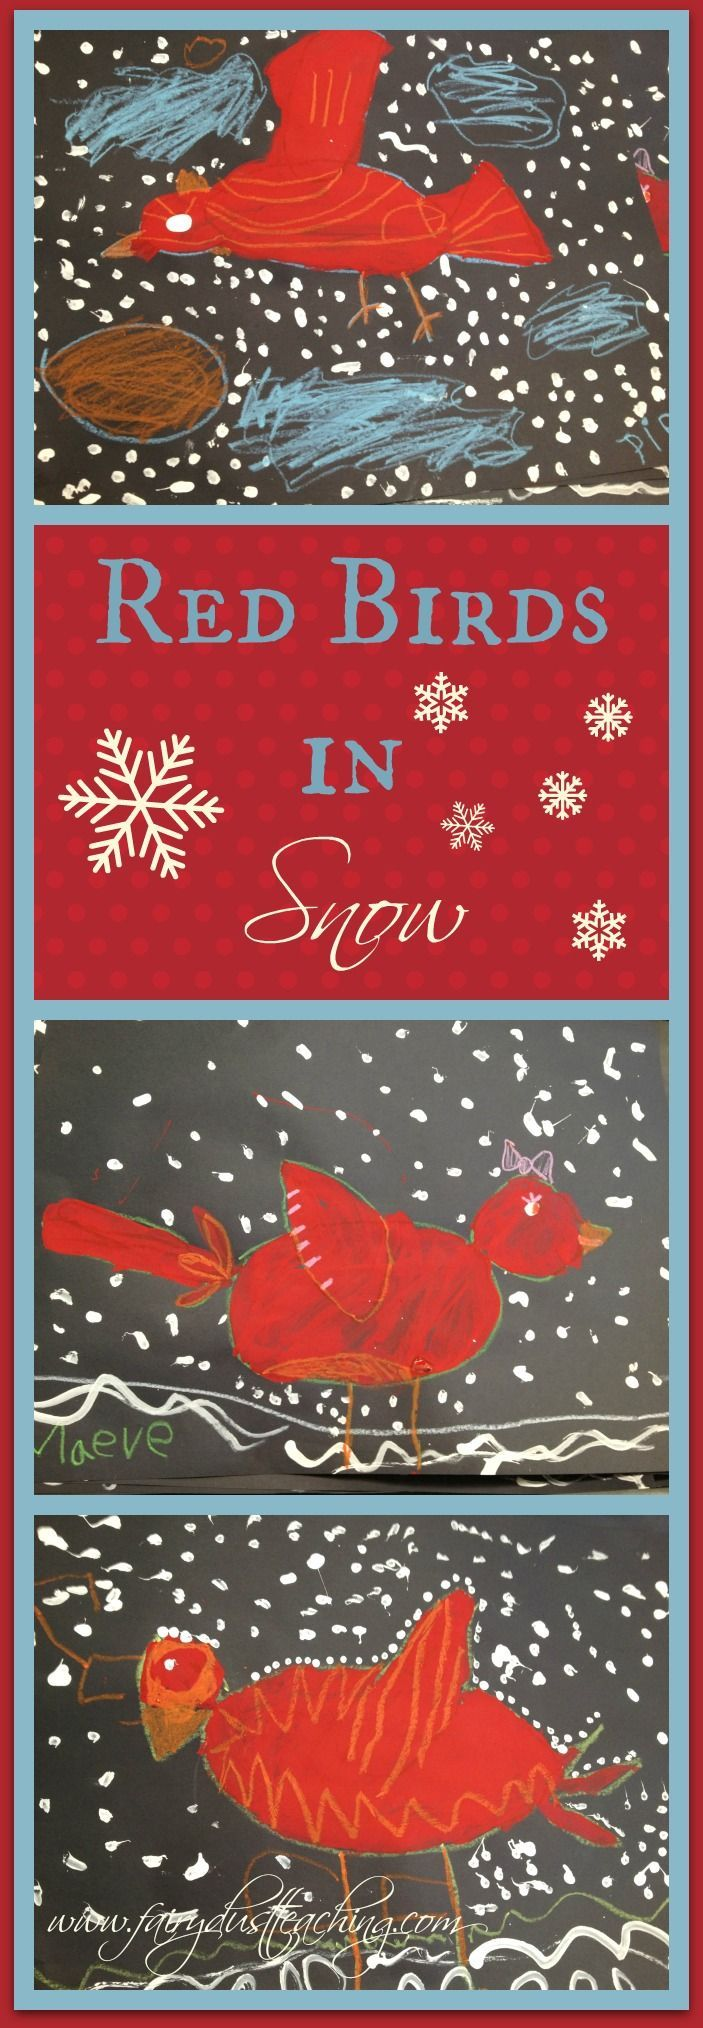 Red Birds in Snow Art Project! Get the step-by-step at www.fairydustteaching.com!